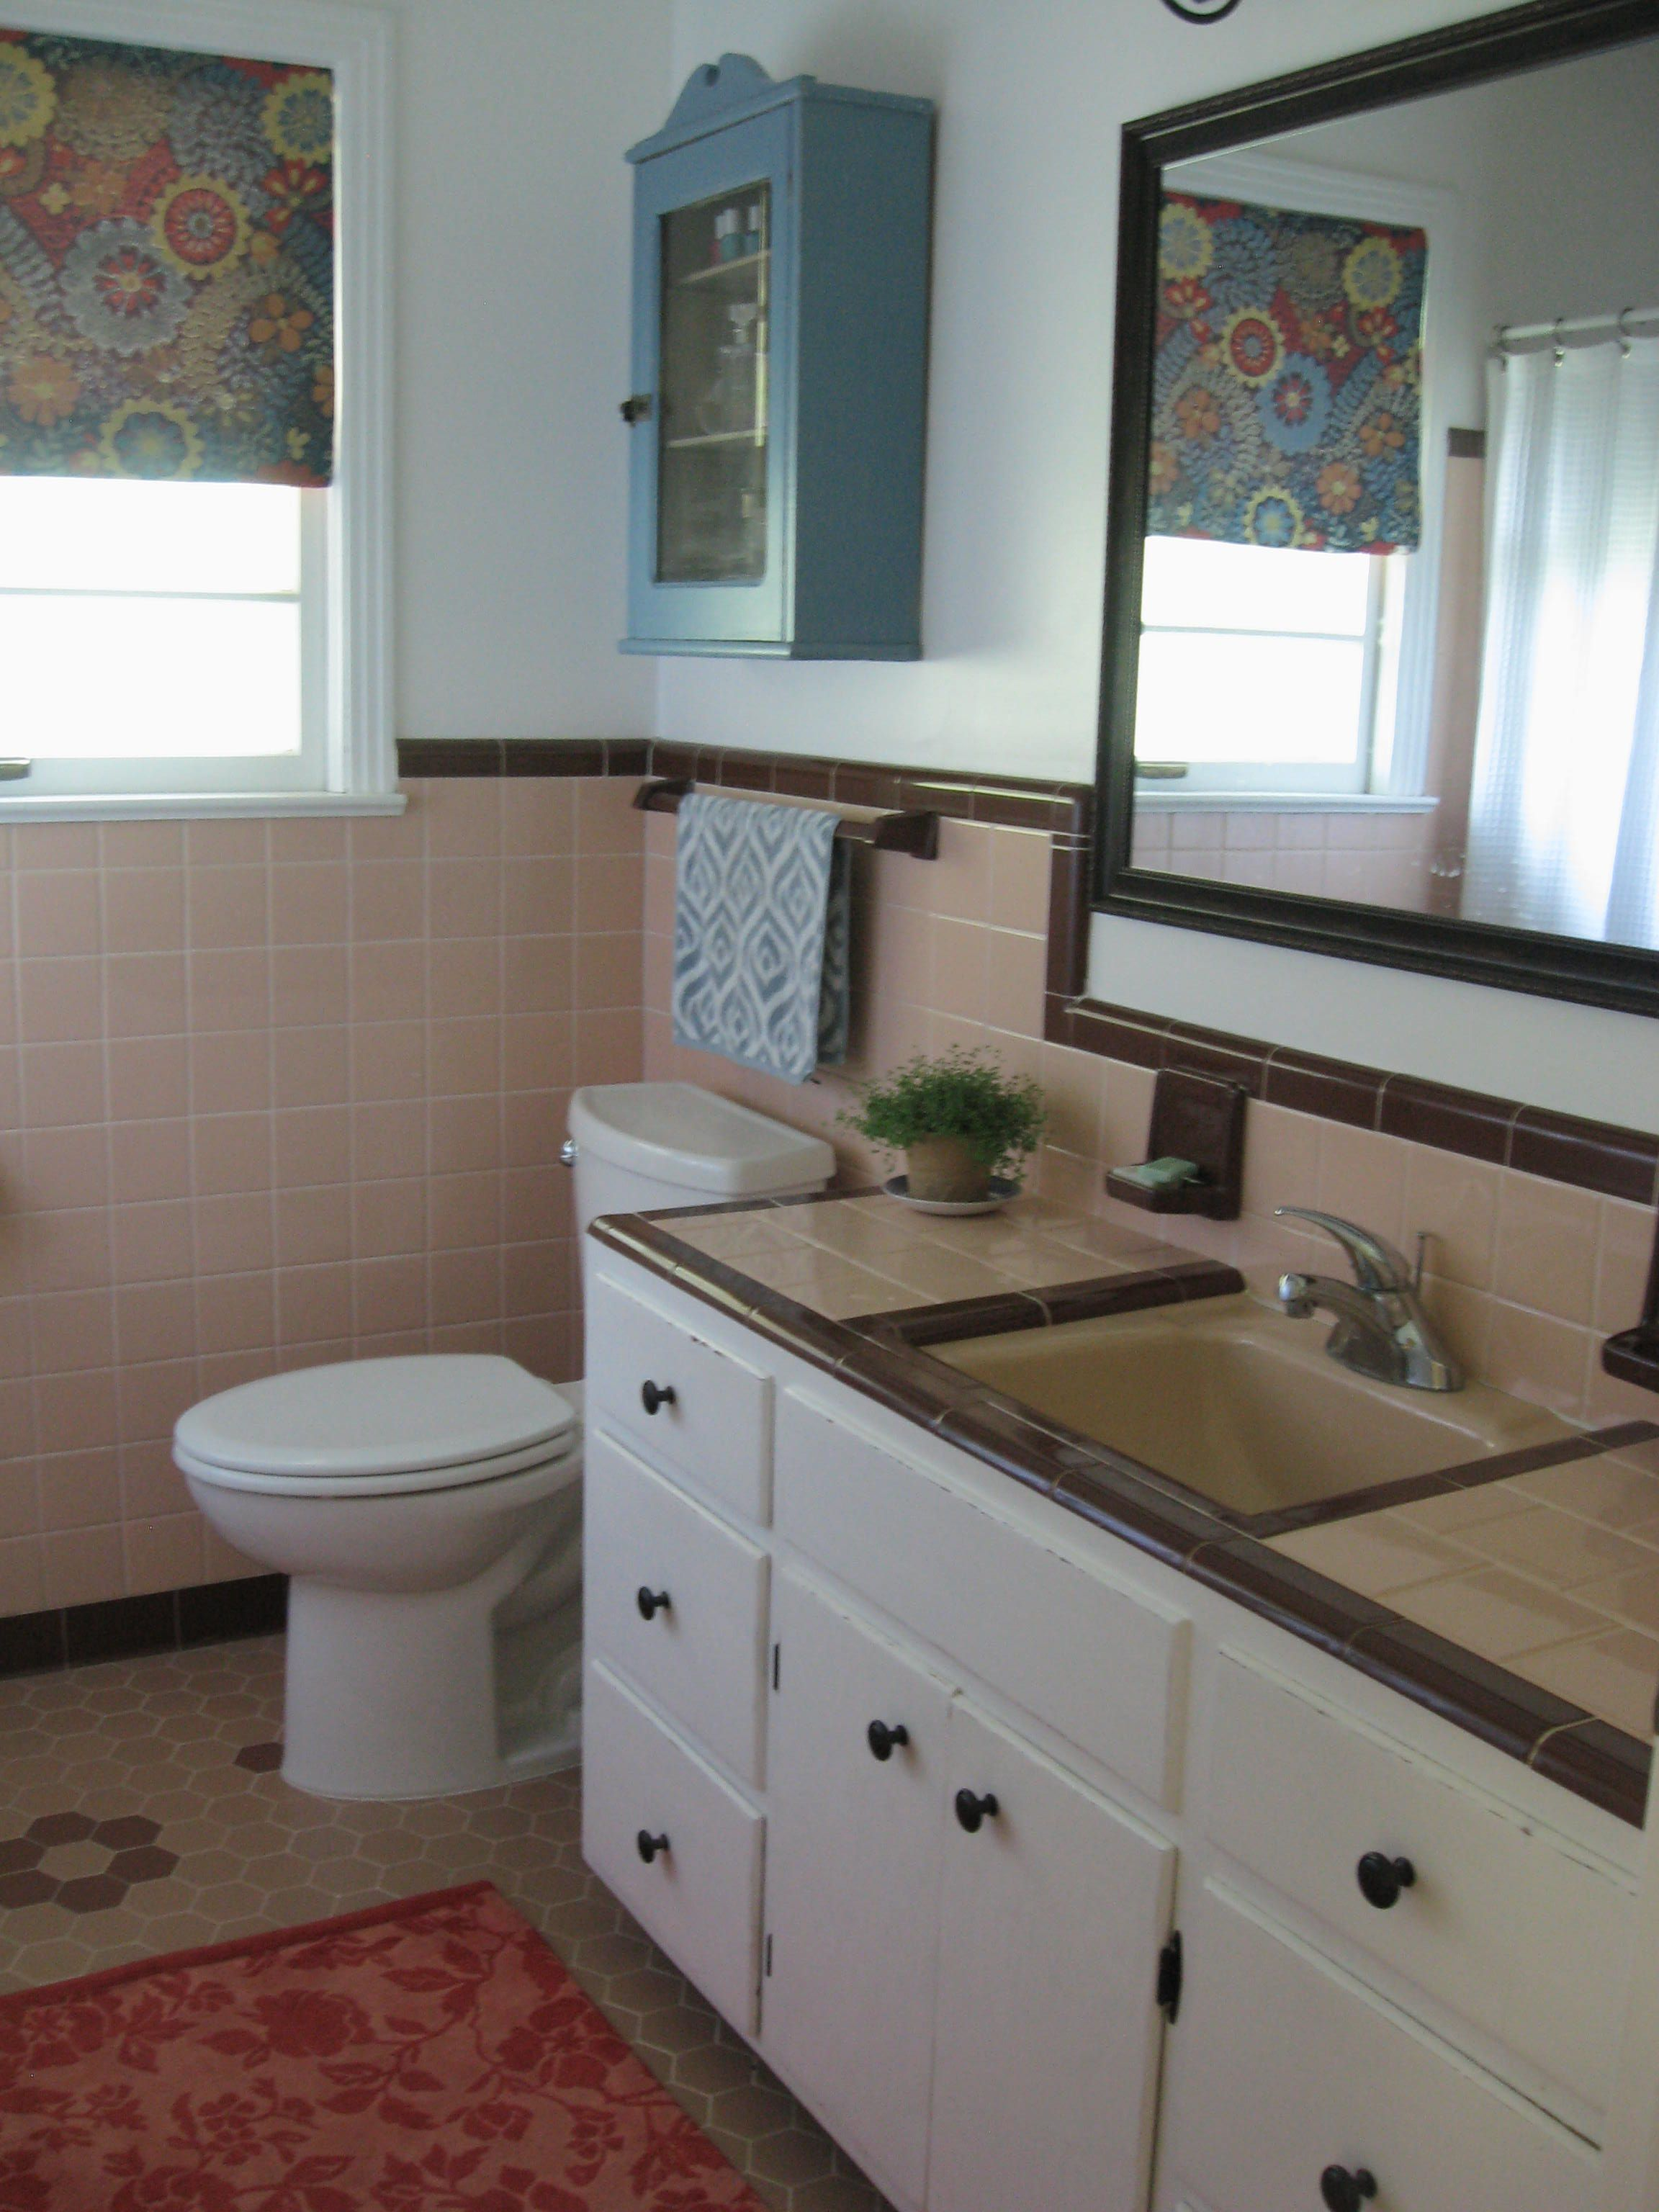 Retro bathroom. 50s bathroom, peach tile with reddish-brown trim. Blue and